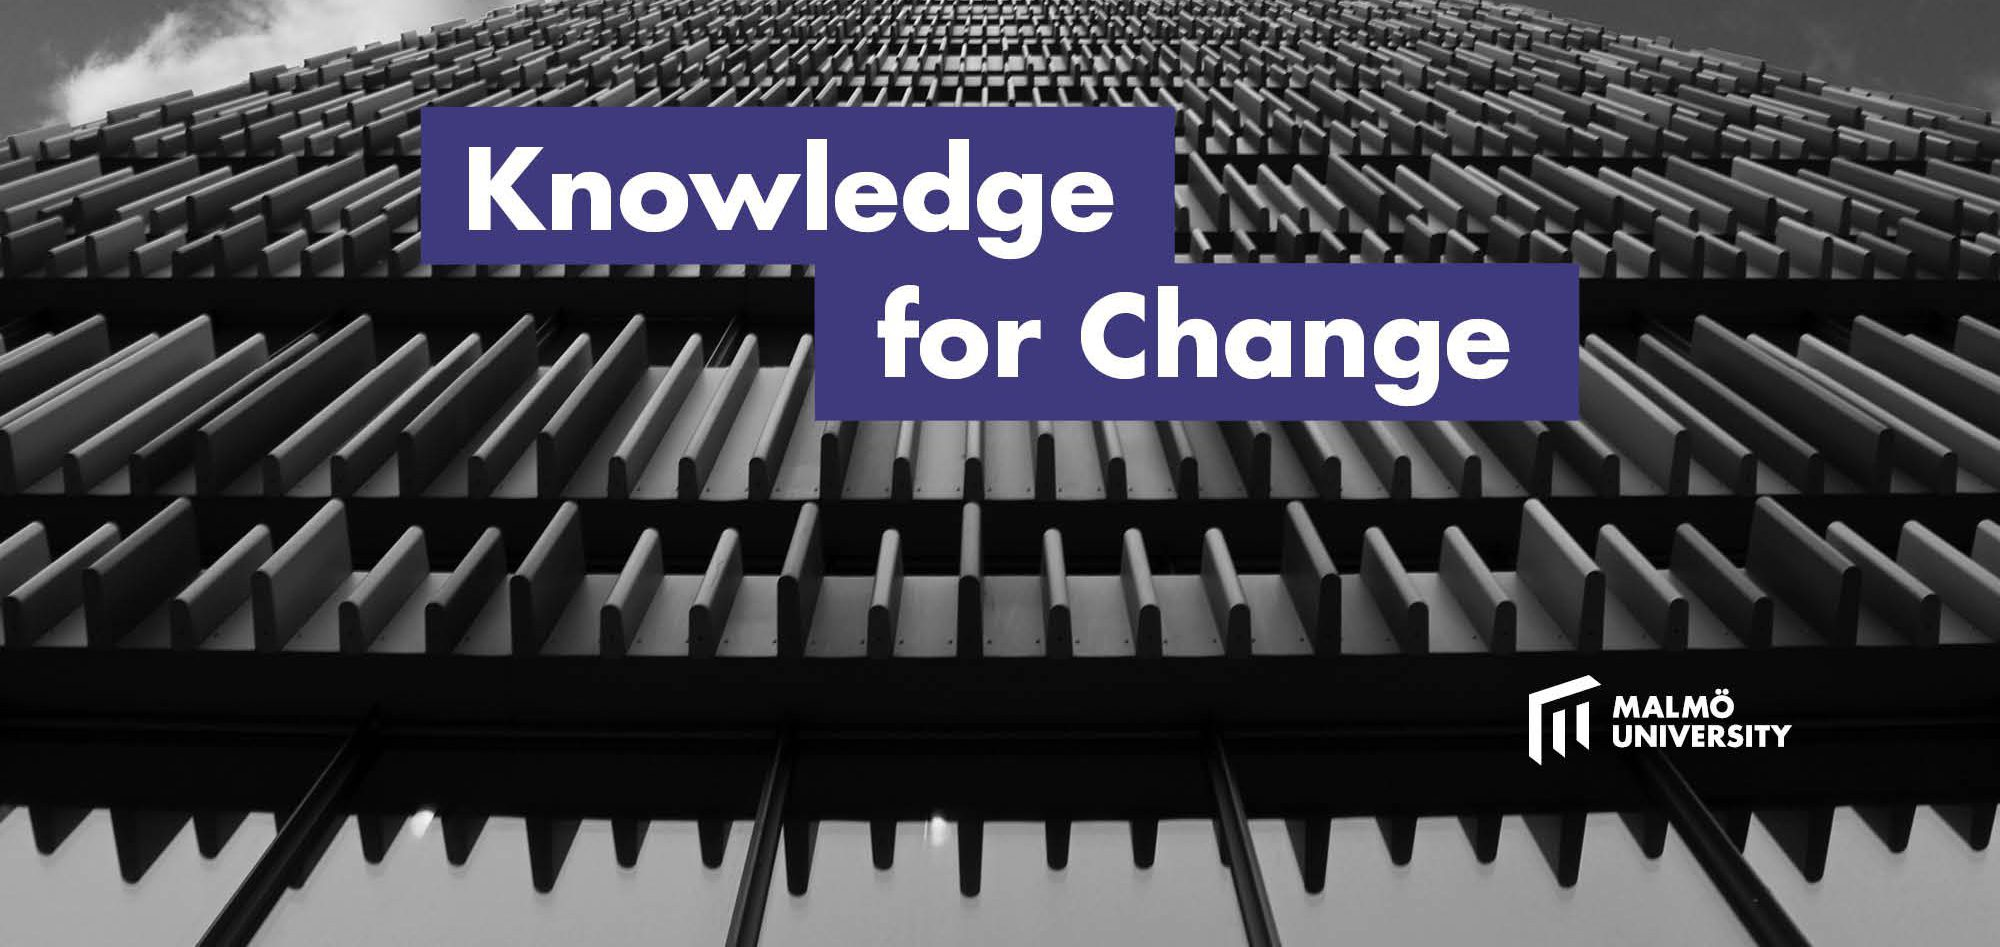 Knowledge for Change